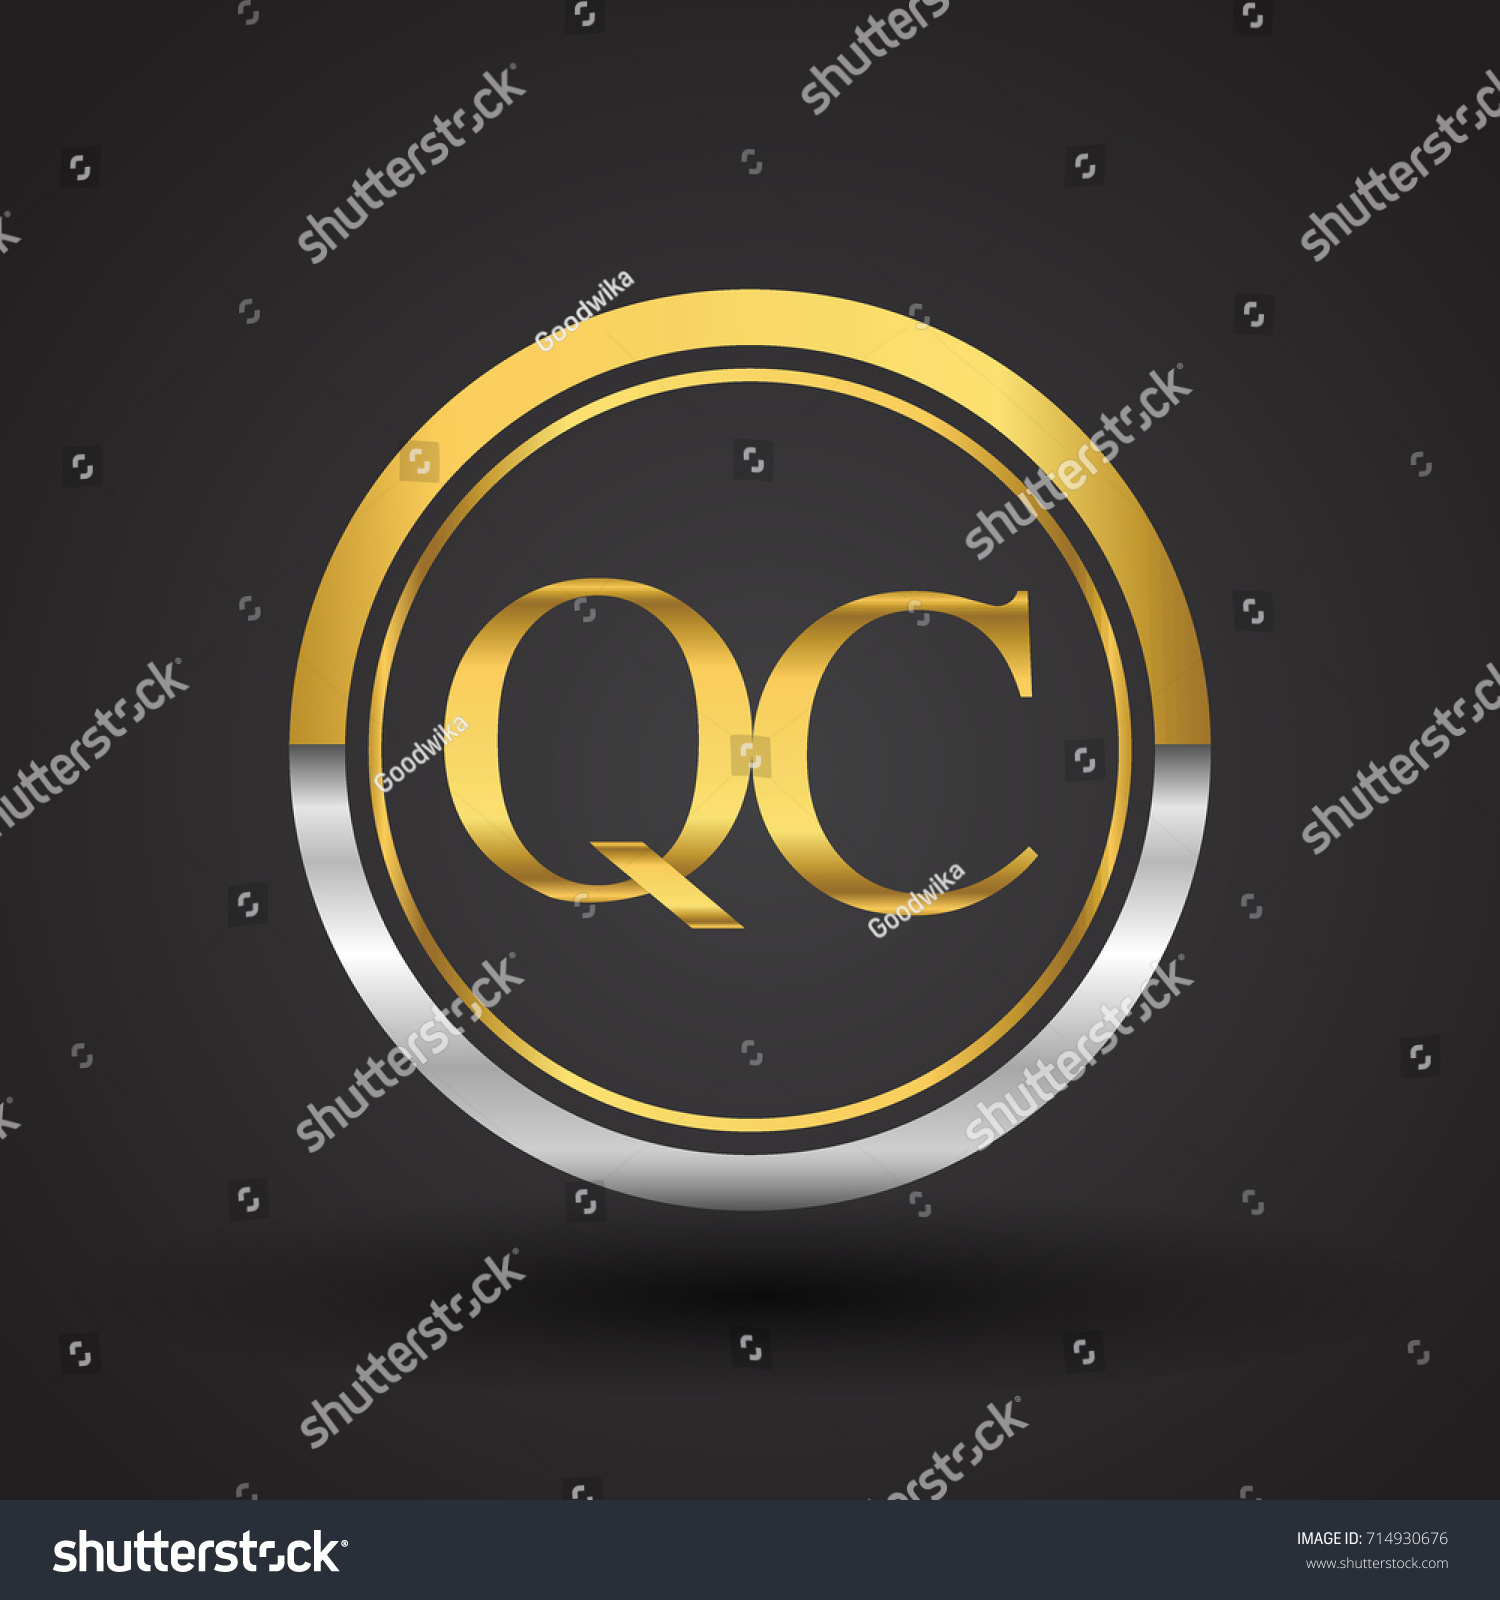 Qc Letter Logo Circle Gold Silver Stock Vector HD (Royalty Free ...